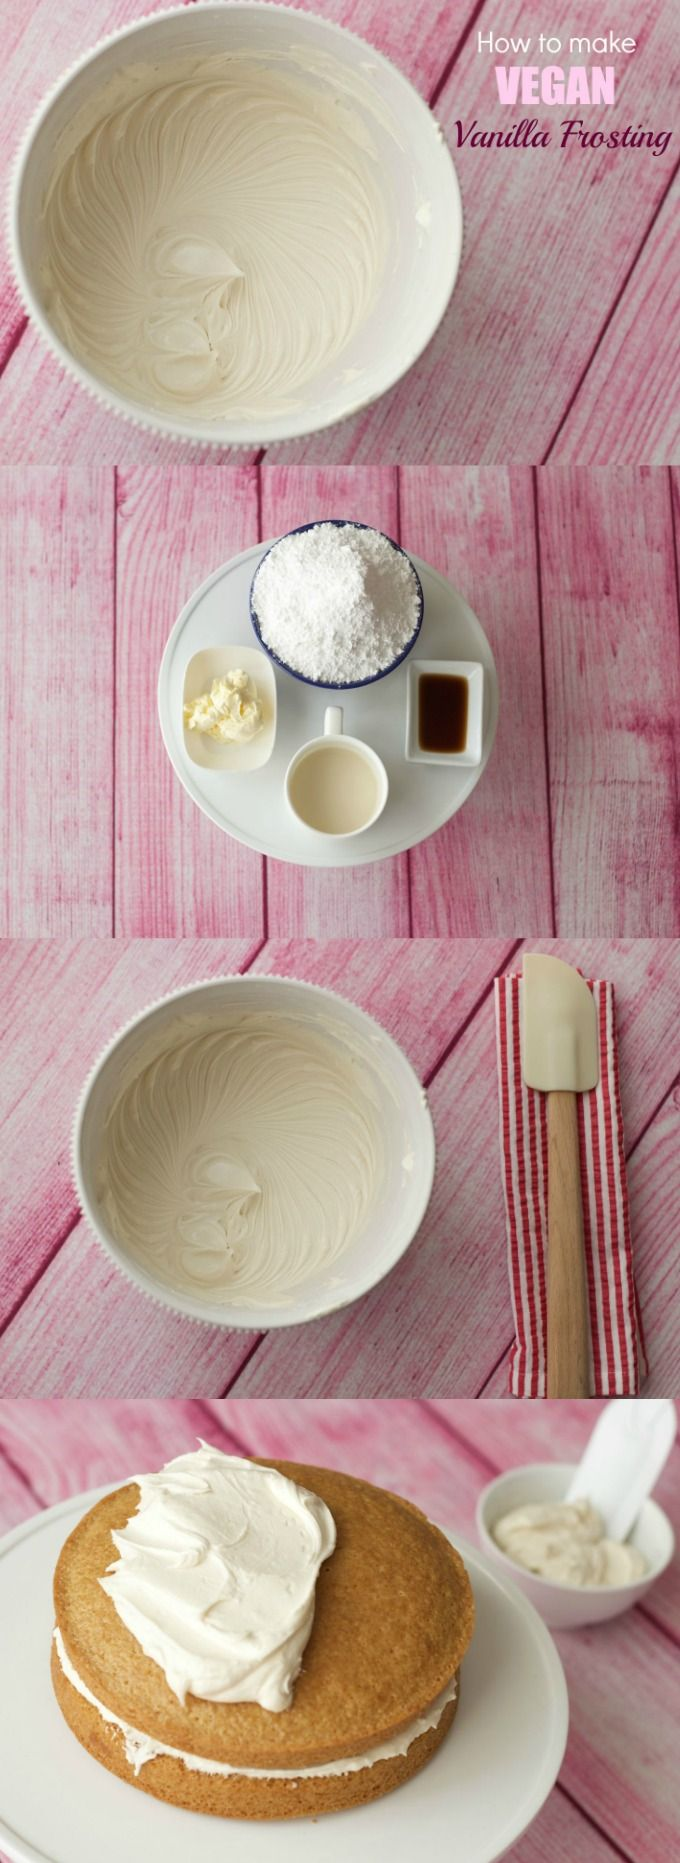 Smooth and creamy vegan vanilla frosting recipe - ideal for cakes, cupcakes and cookies lovingitvegan.com...